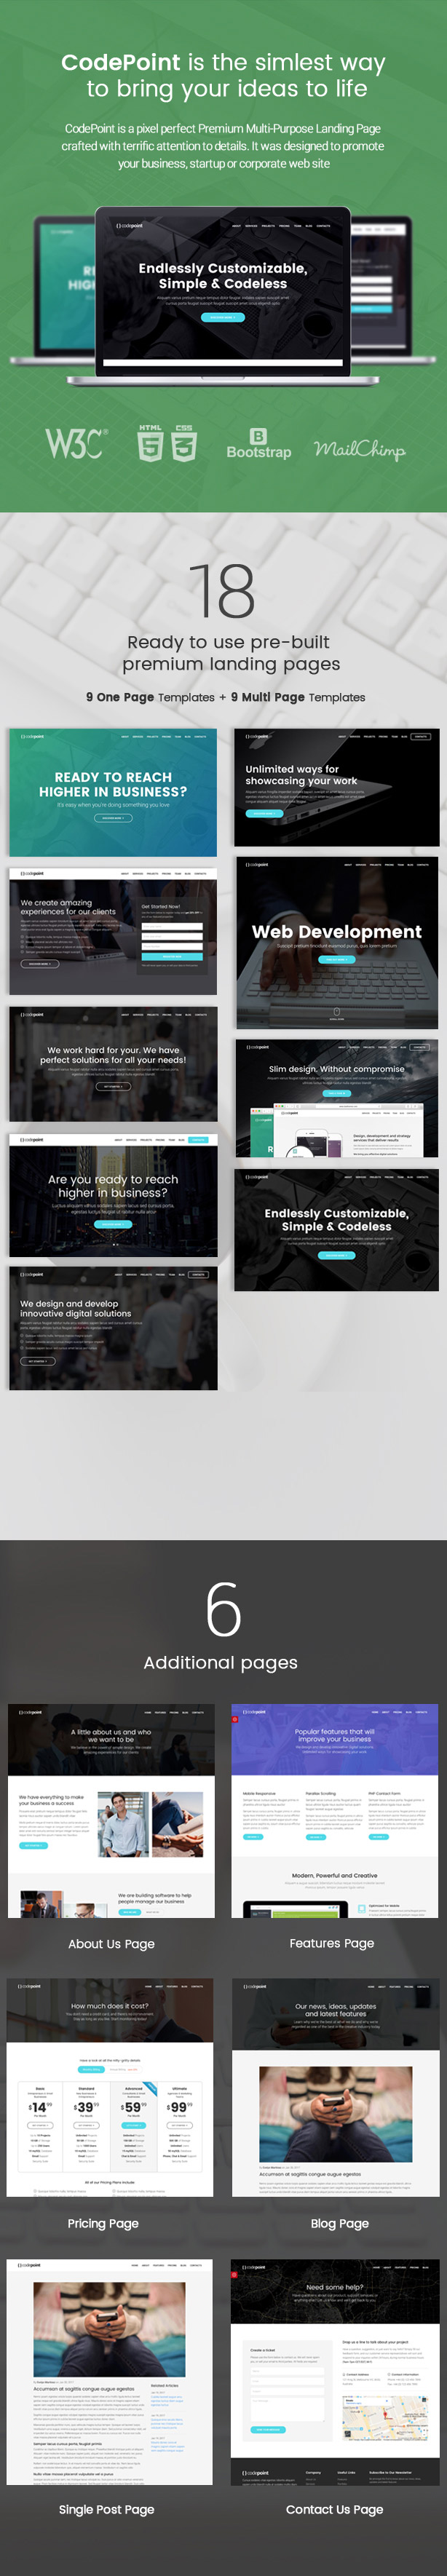 CodePoint - Multi-Purpose Landing Page WordPress Theme by Jthemes ...